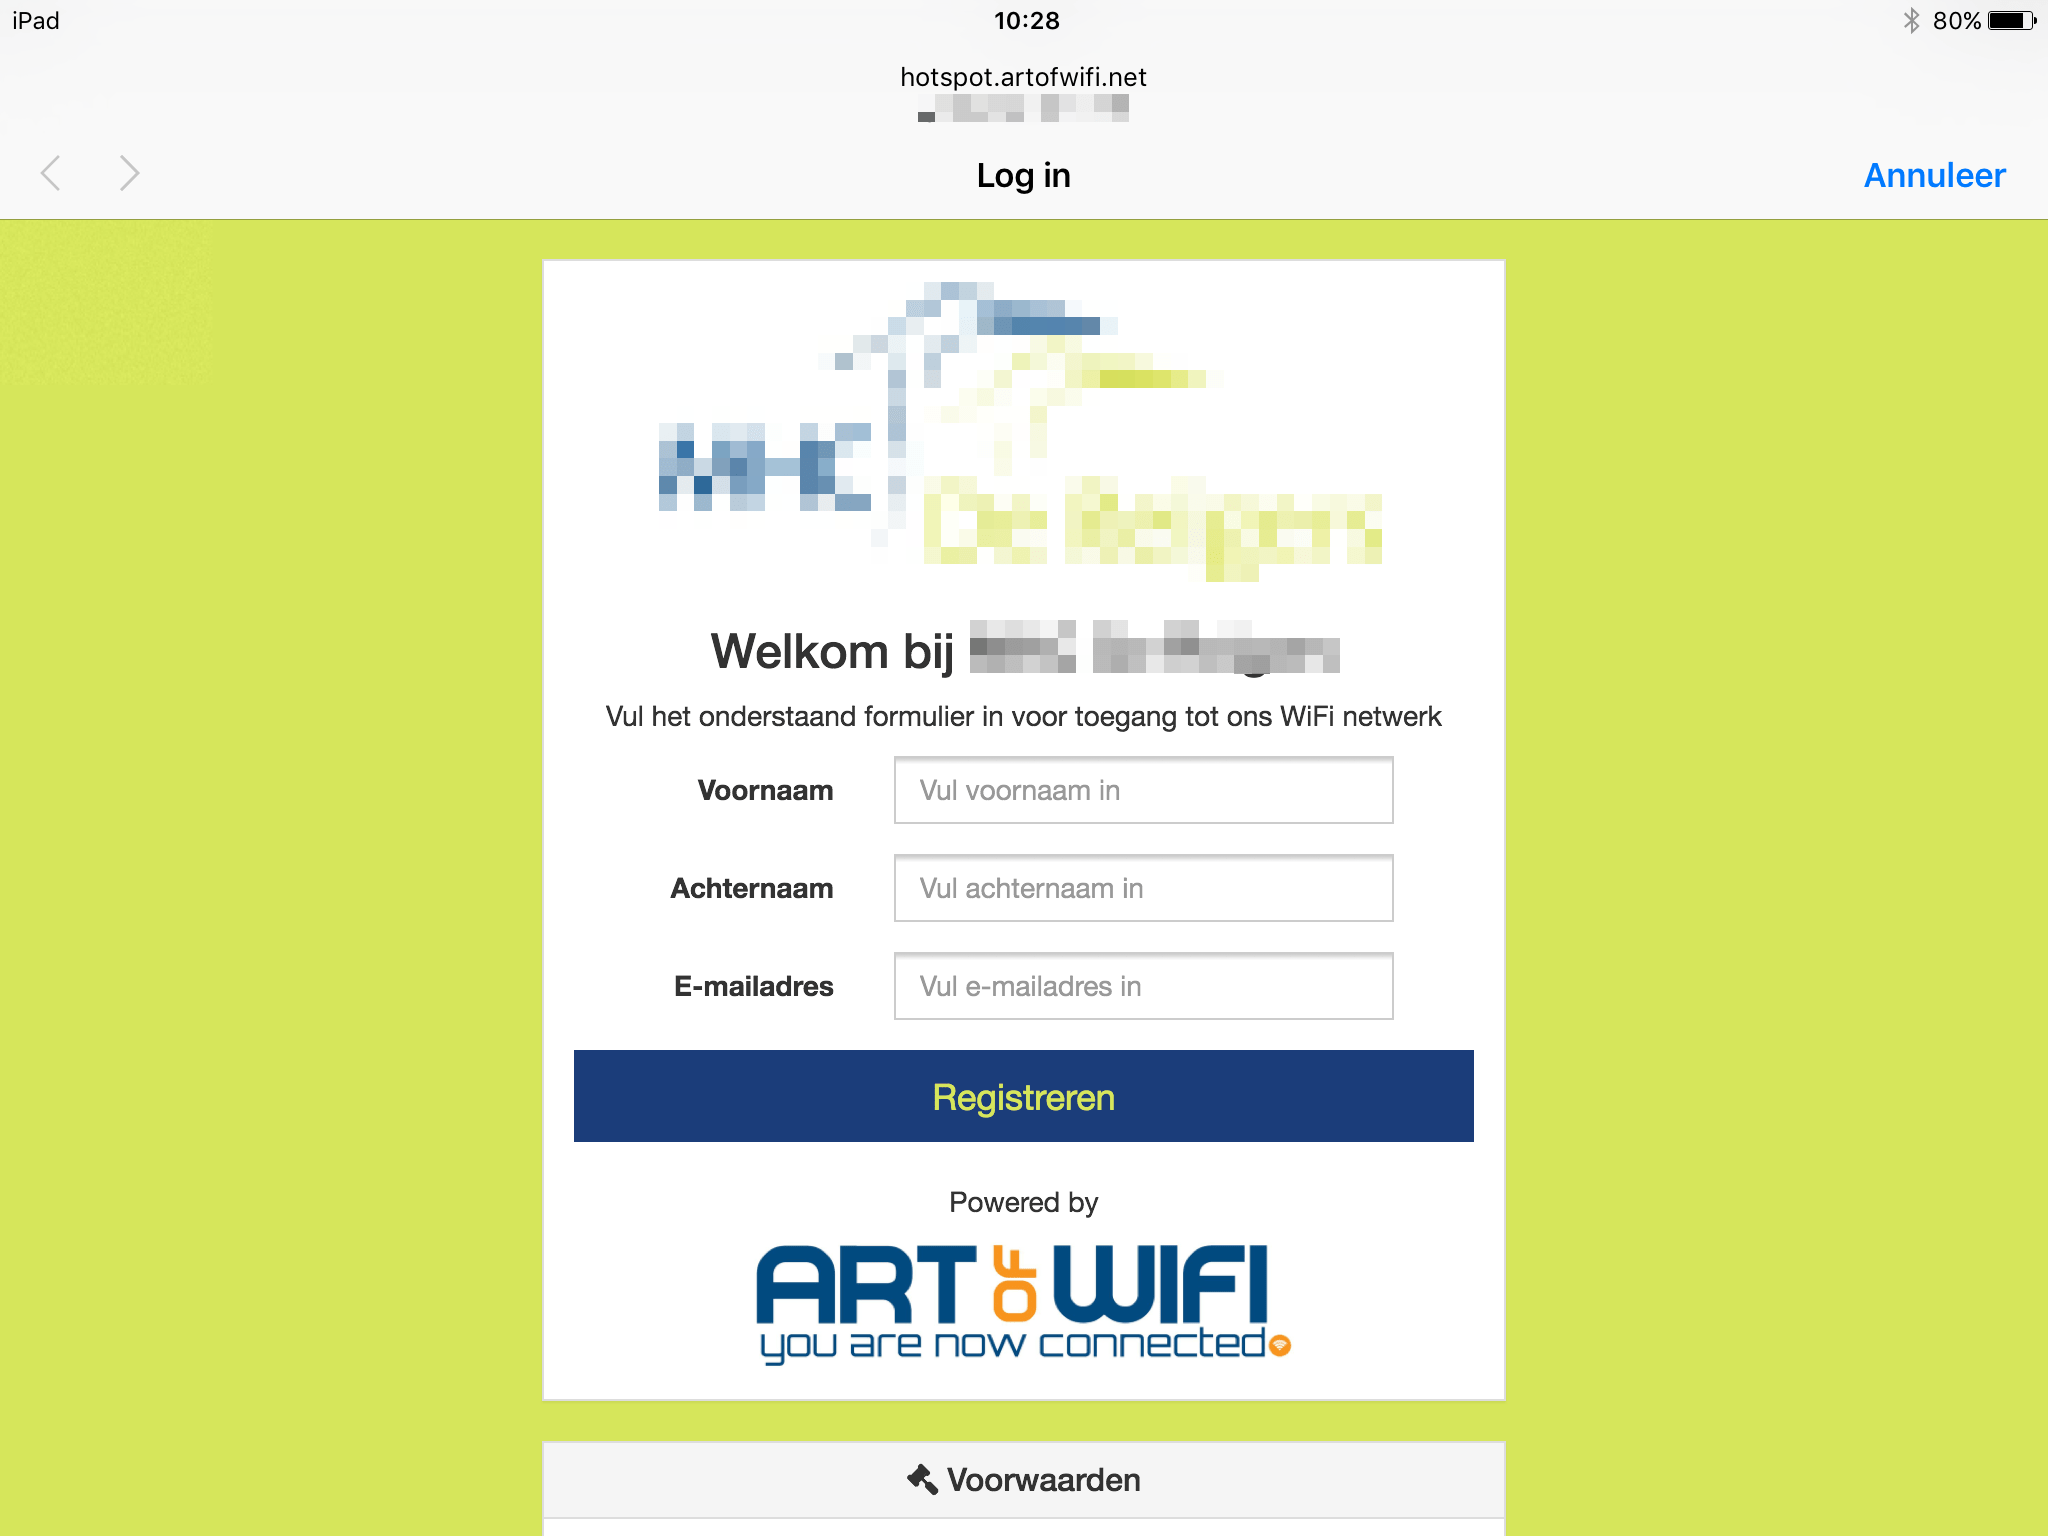 Example captive portal splash page for UniFi wifi, iPad resolution